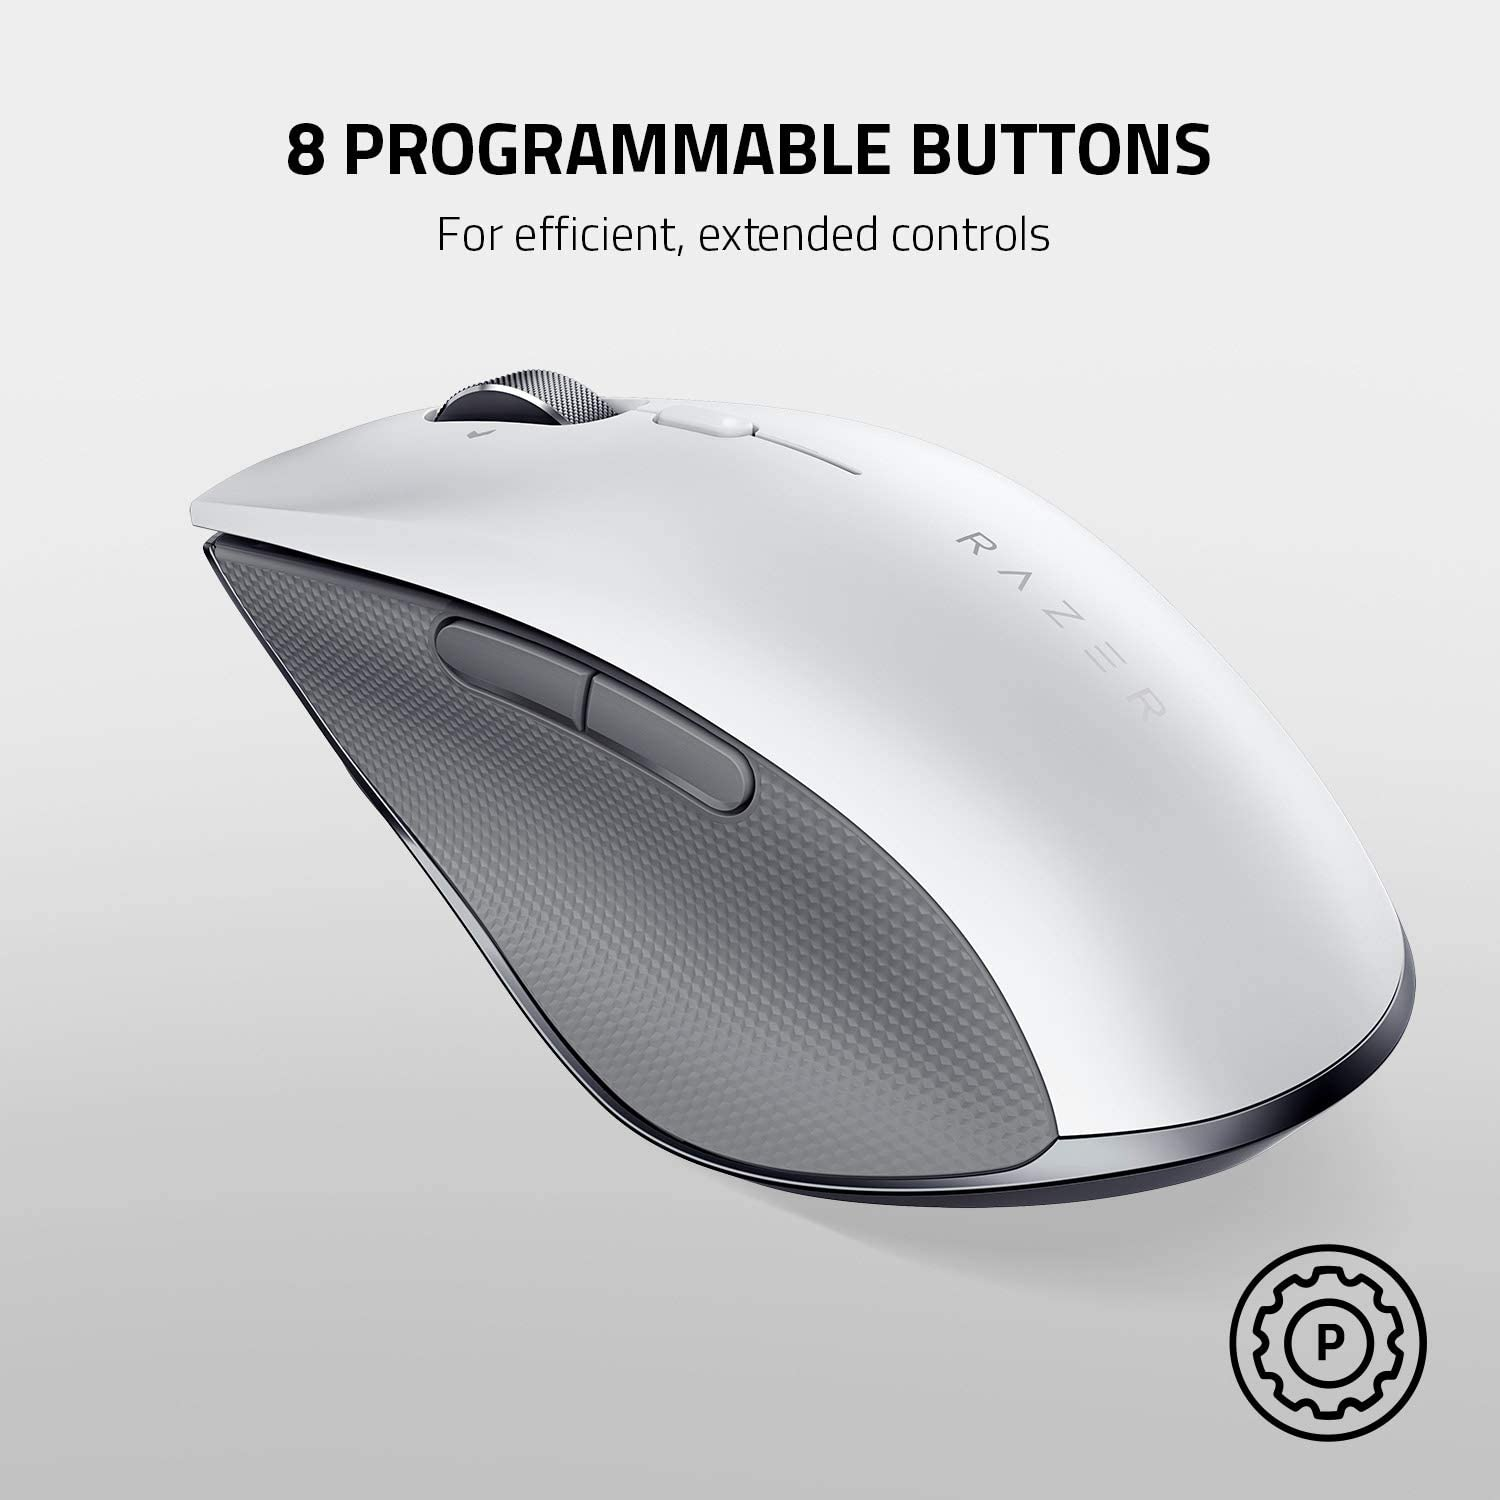 8 Programmable Buttons